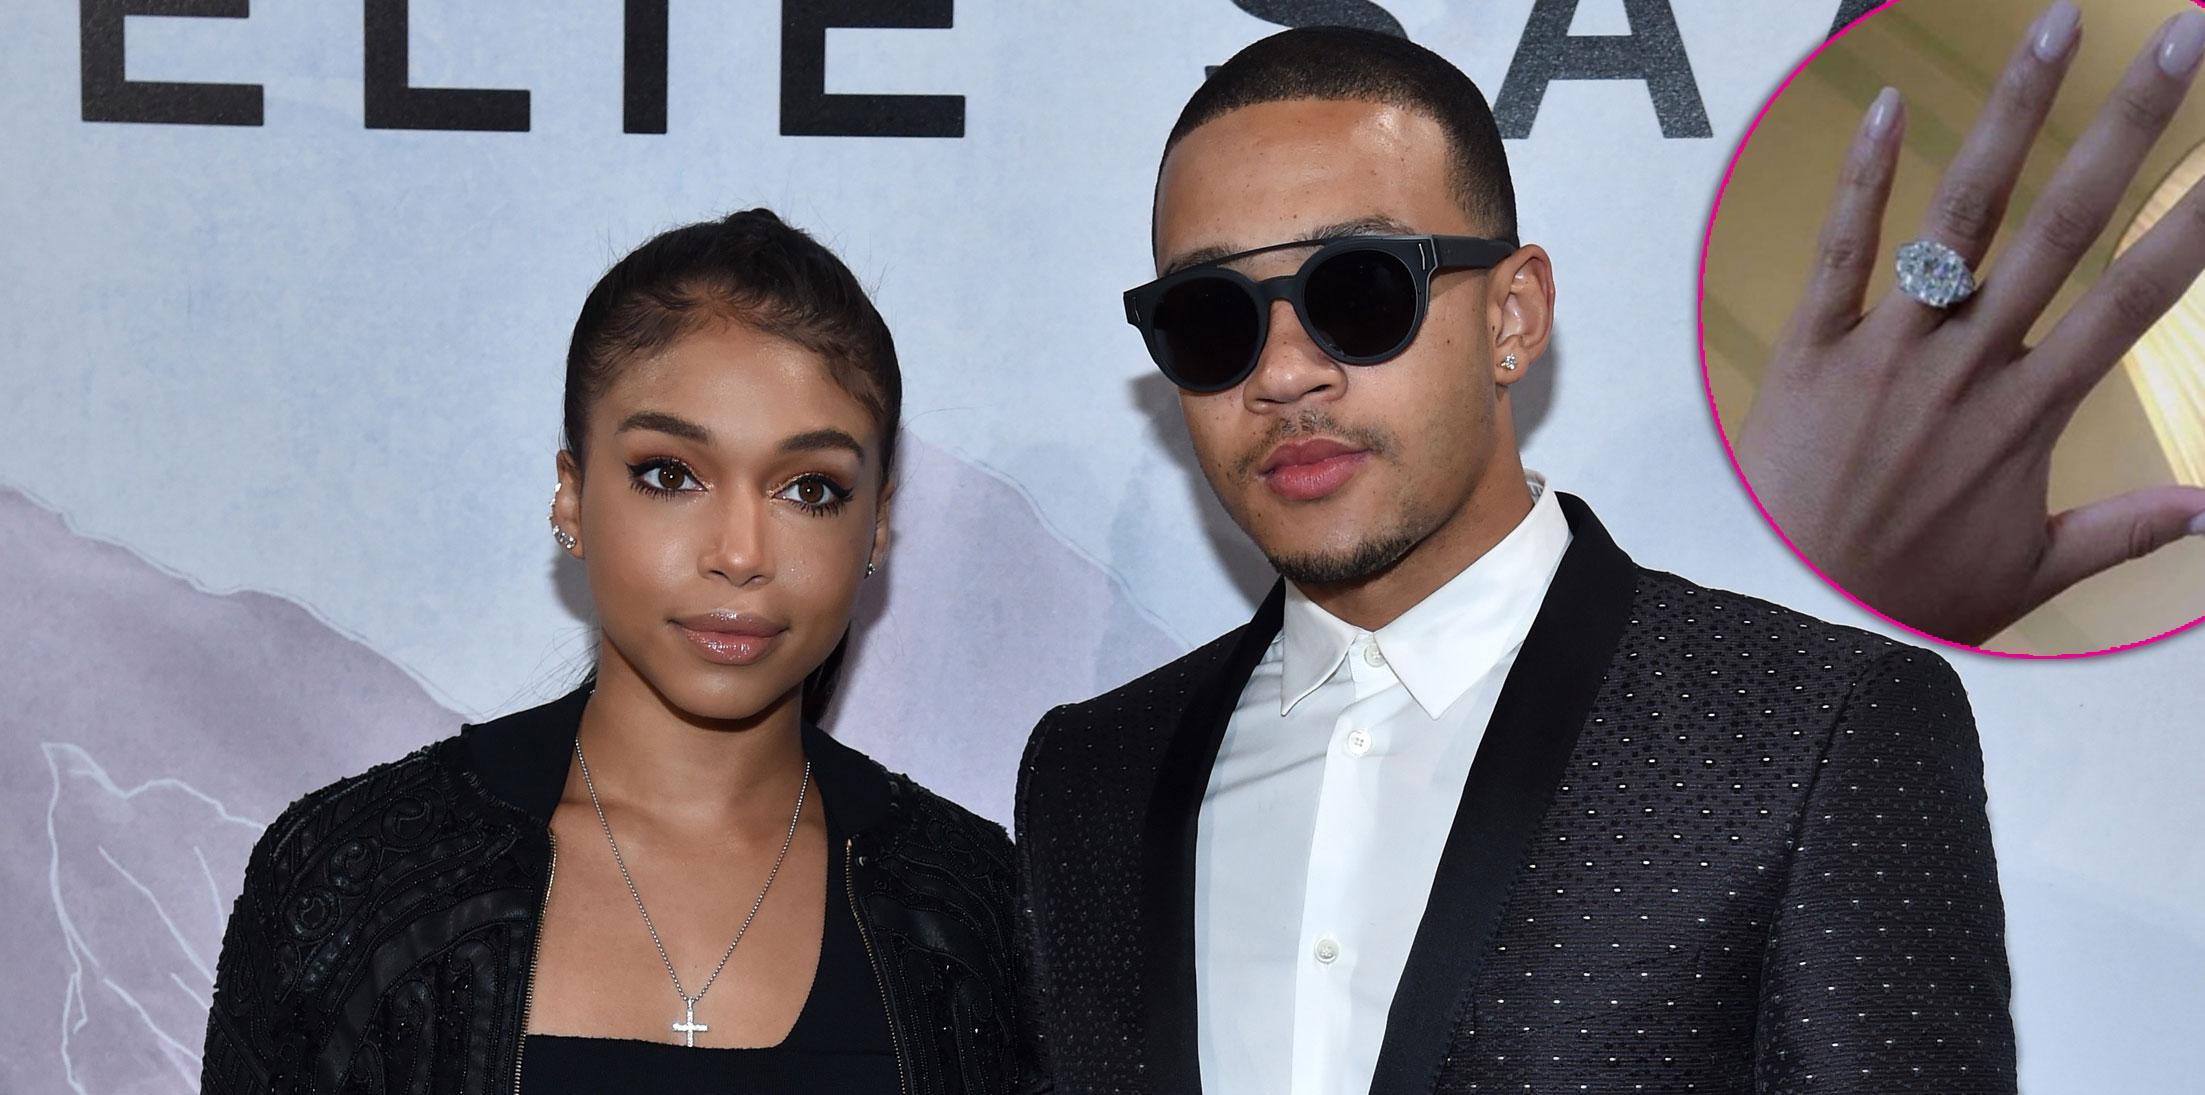 Steve Harvey Daughter Lori Harvey Engaged Memphis Depay Long